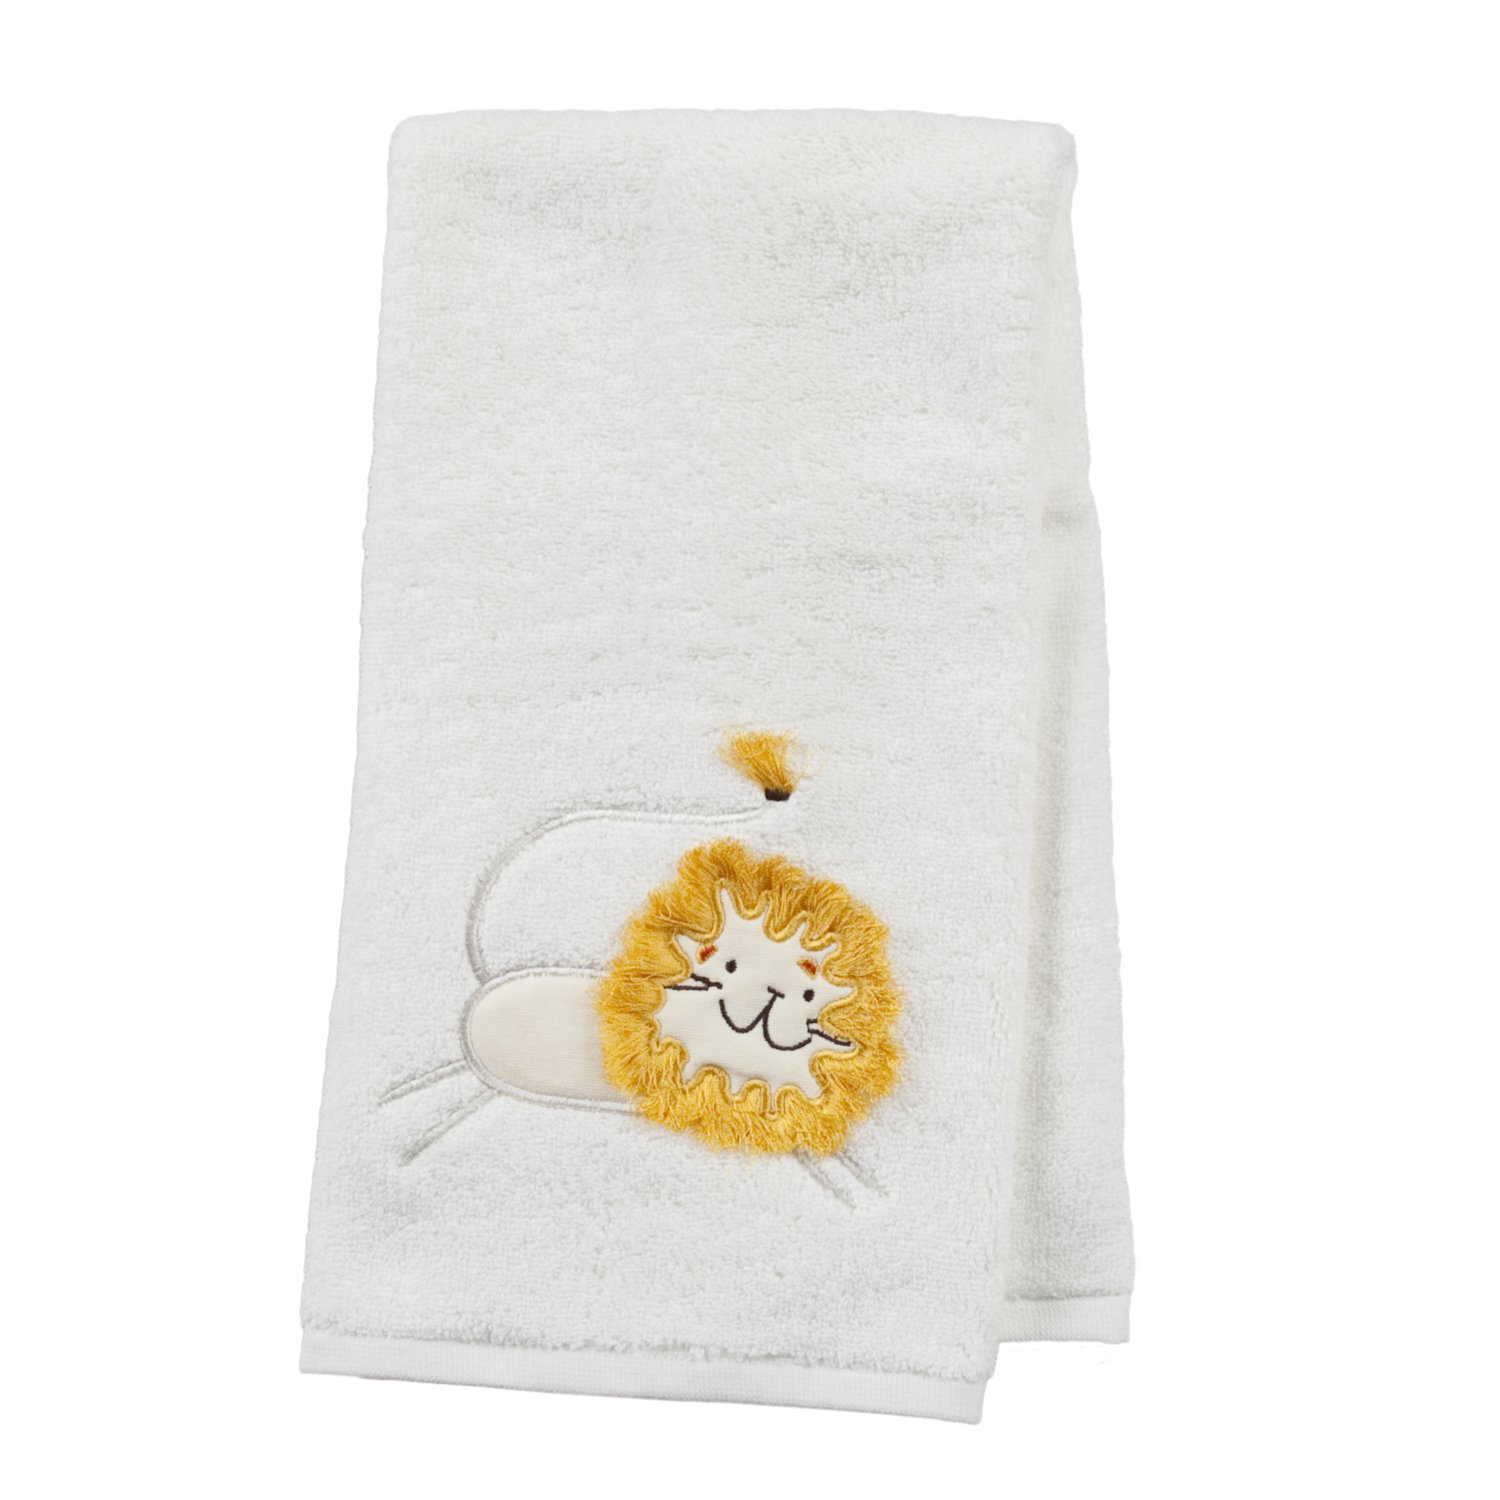 Creative Bath Products Animal Crackers Hand Towel